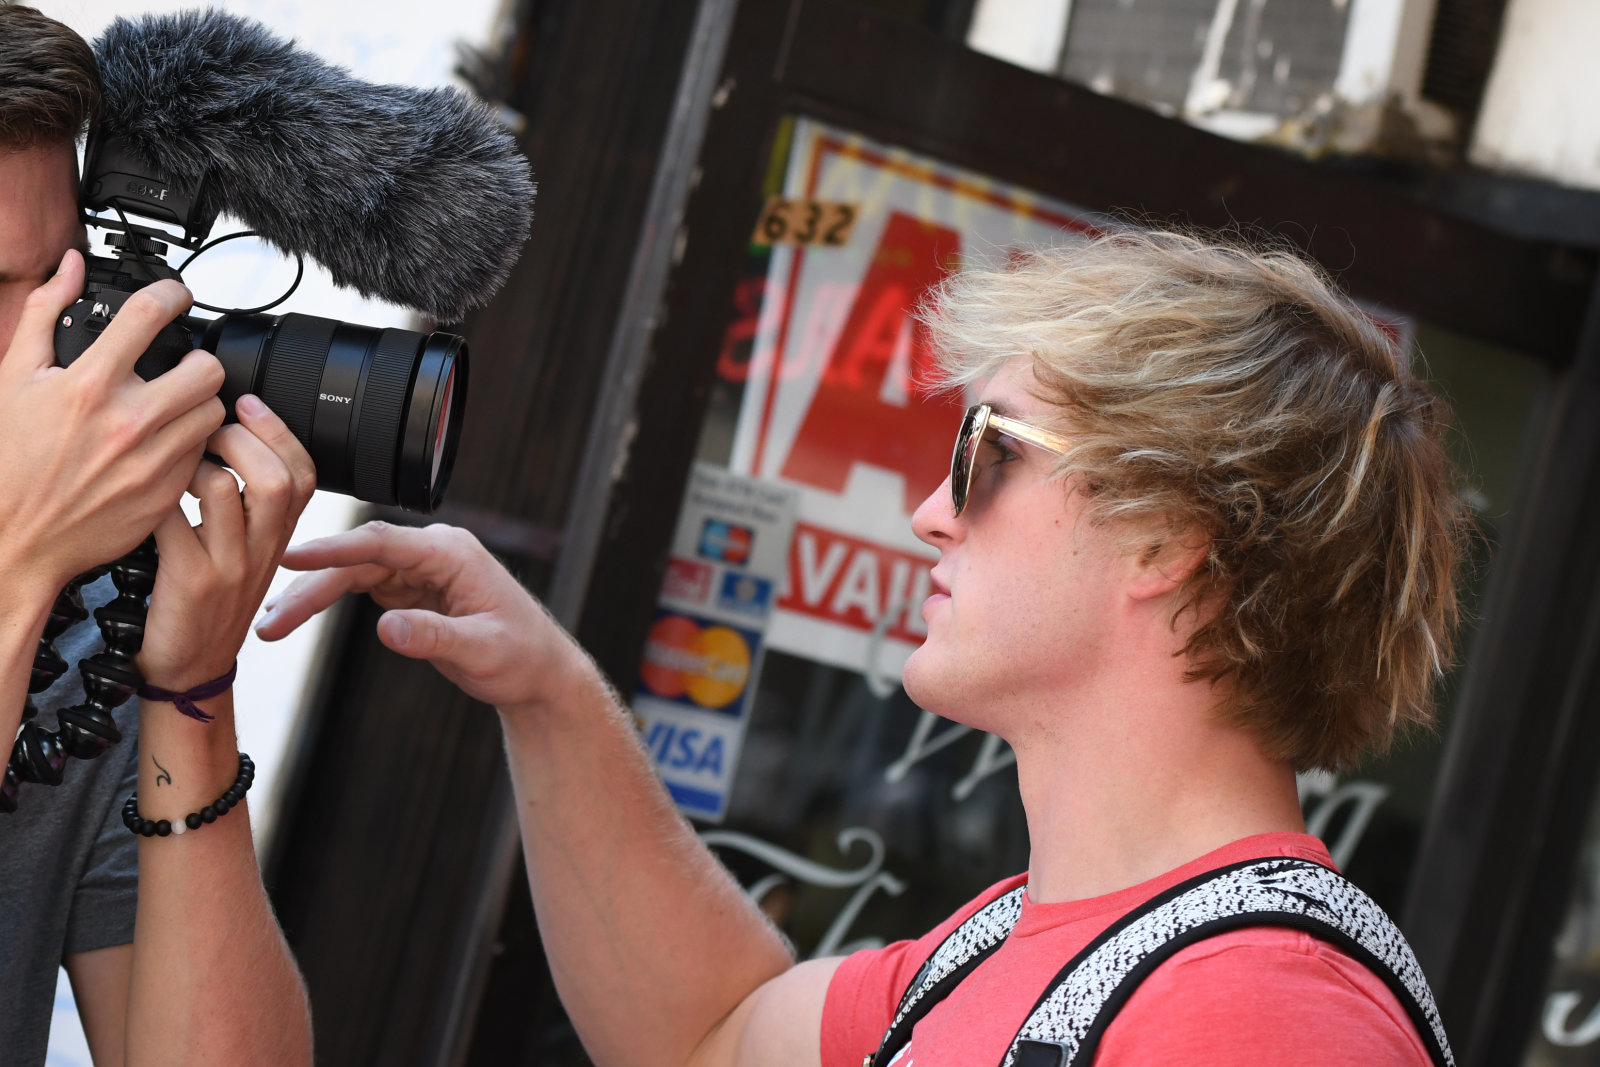 LOS ANGELES, CA - AUGUST 08: Logan Paul is seen on August 08, 2017 in Los Angeles, California.  (Photo by PG/Bauer-Griffin/GC Images)